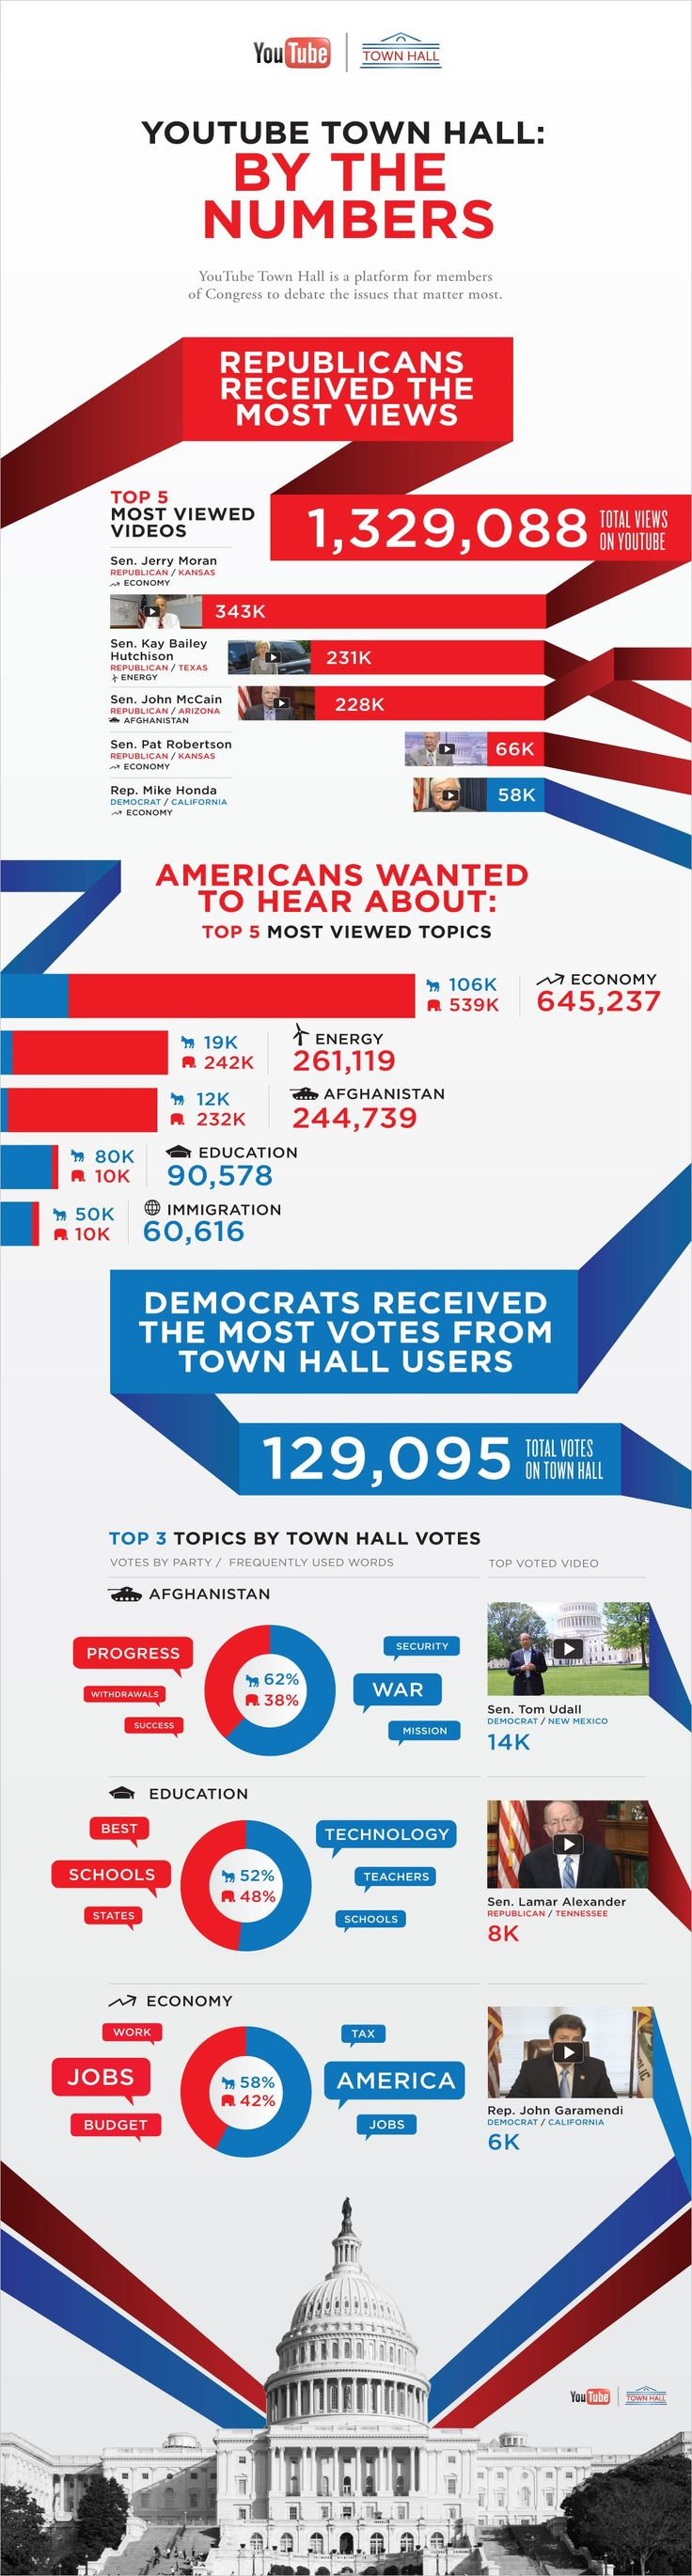 YouTube TownHall - By The Numbers